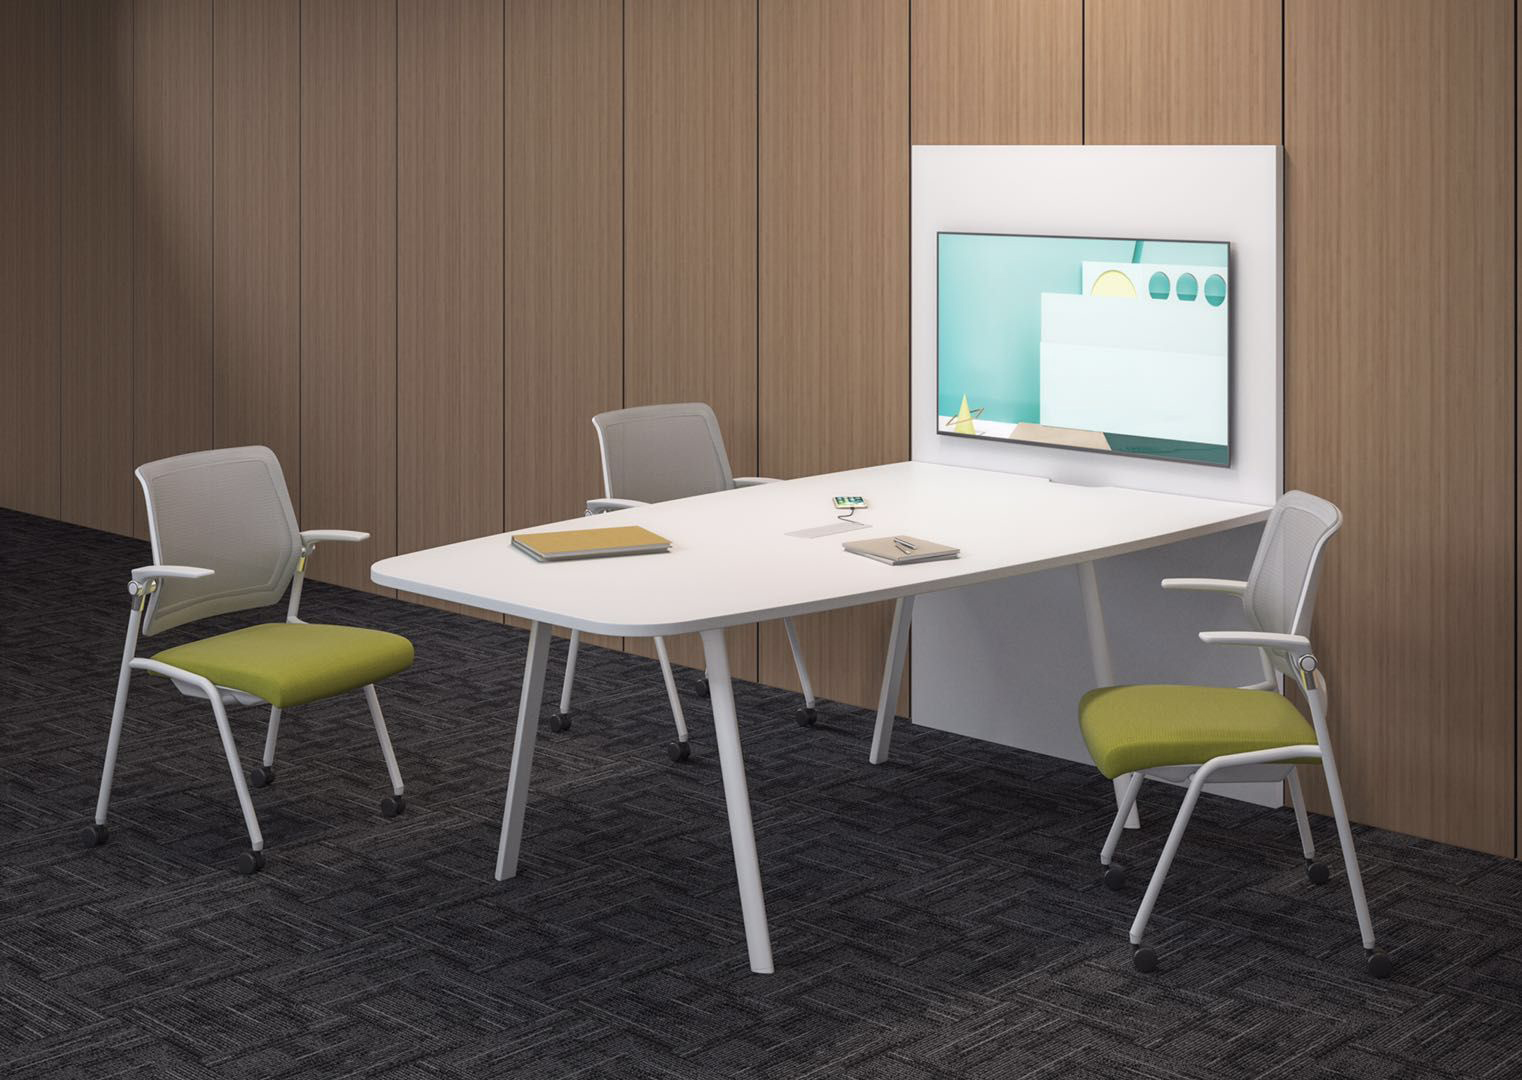 Arti in white frame with media conferencing space.jpg